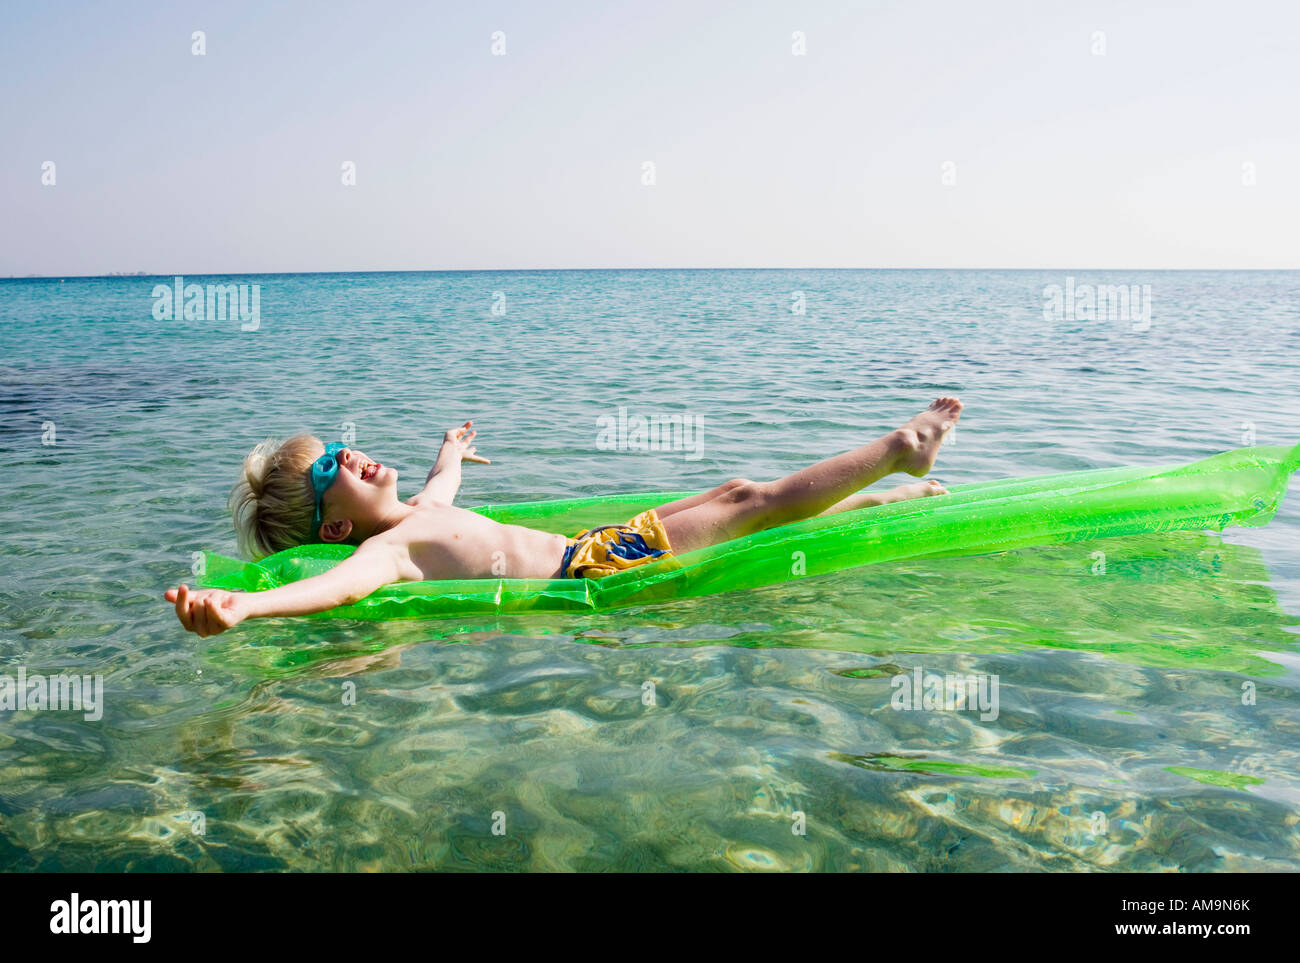 Young boy on an inflatable raft in the water smiling. Stock Photo